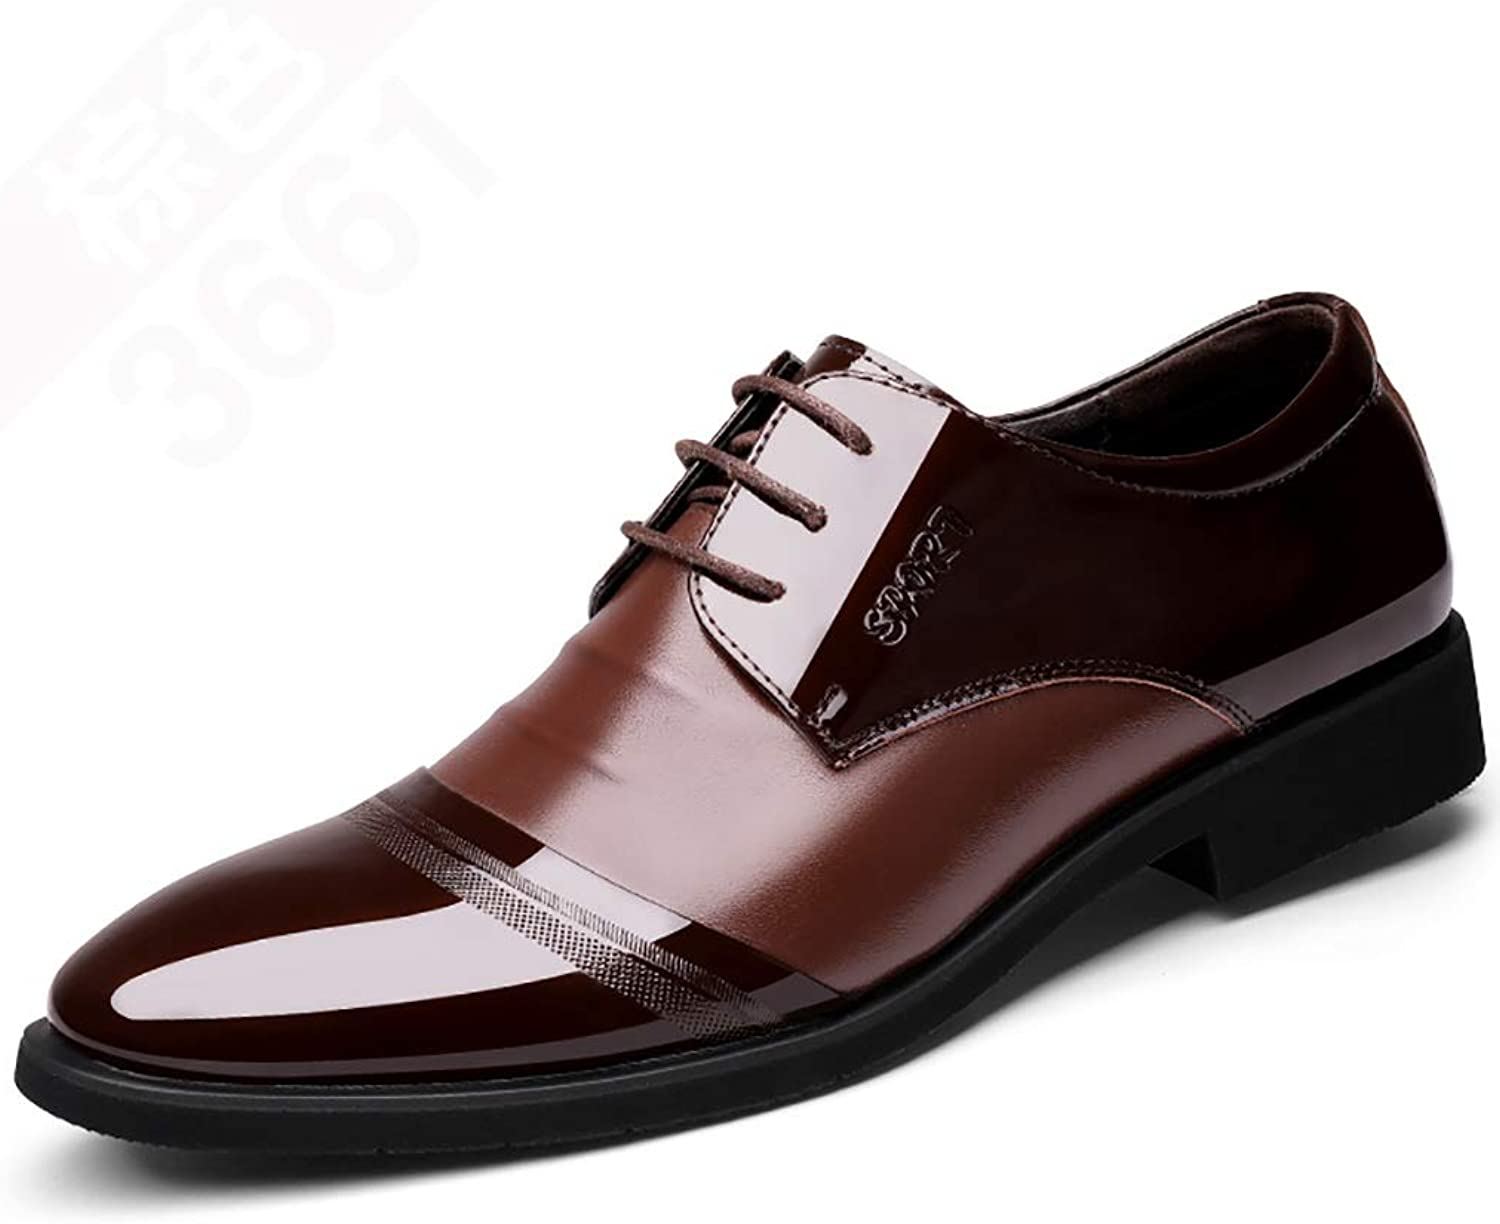 RJNSPx Leather shoes Men's black leather shoes for the four seasons, two layers of leather, business mens dress shoes (color   Brown, Size   5 UK)